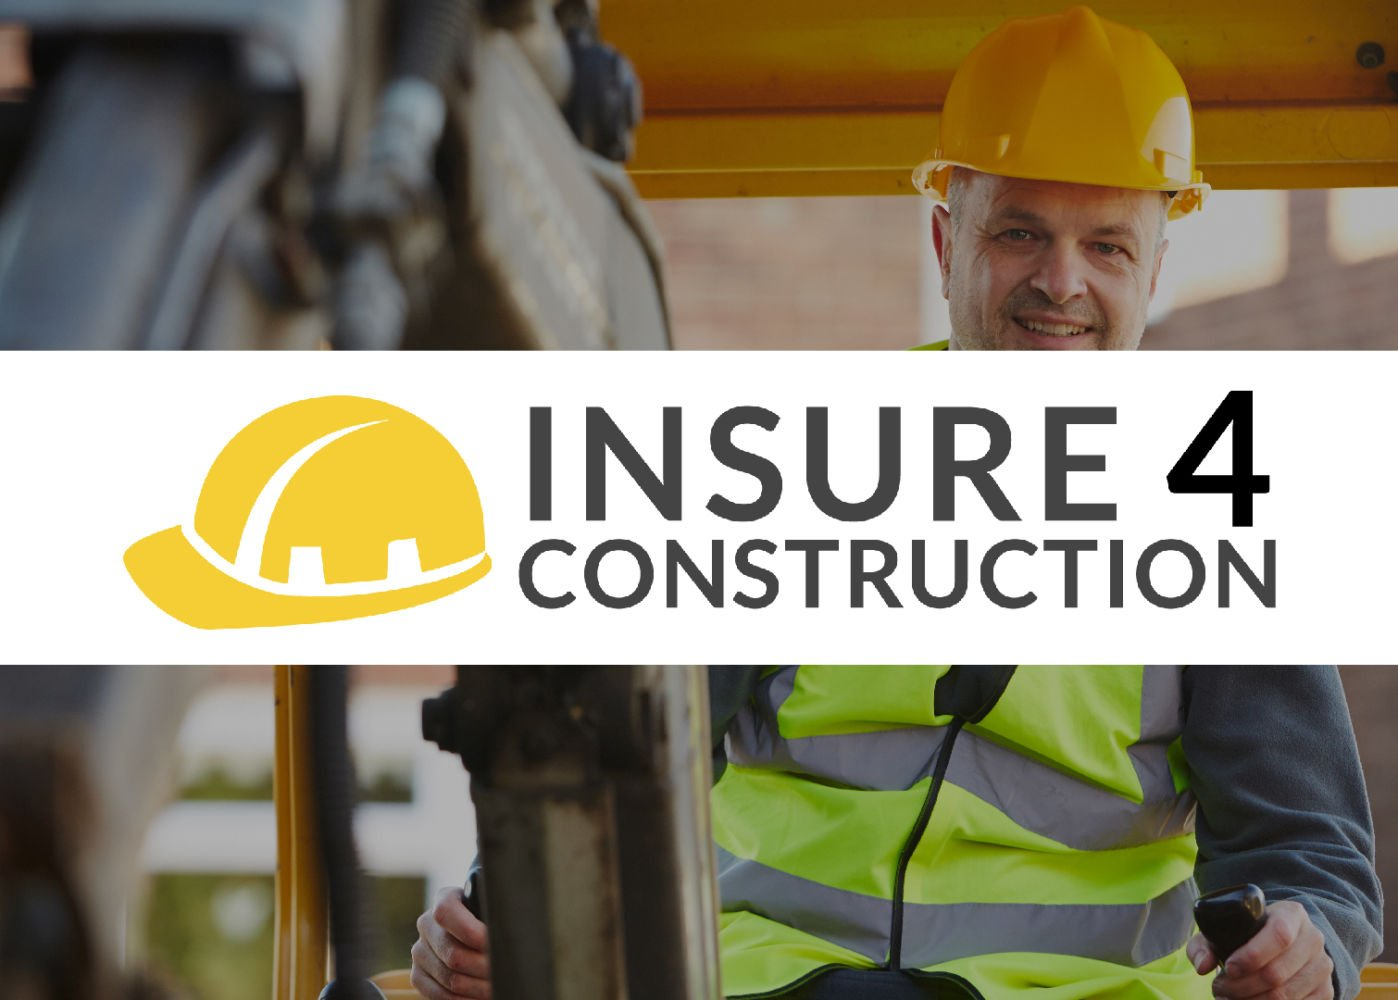 Insure 4 Construction